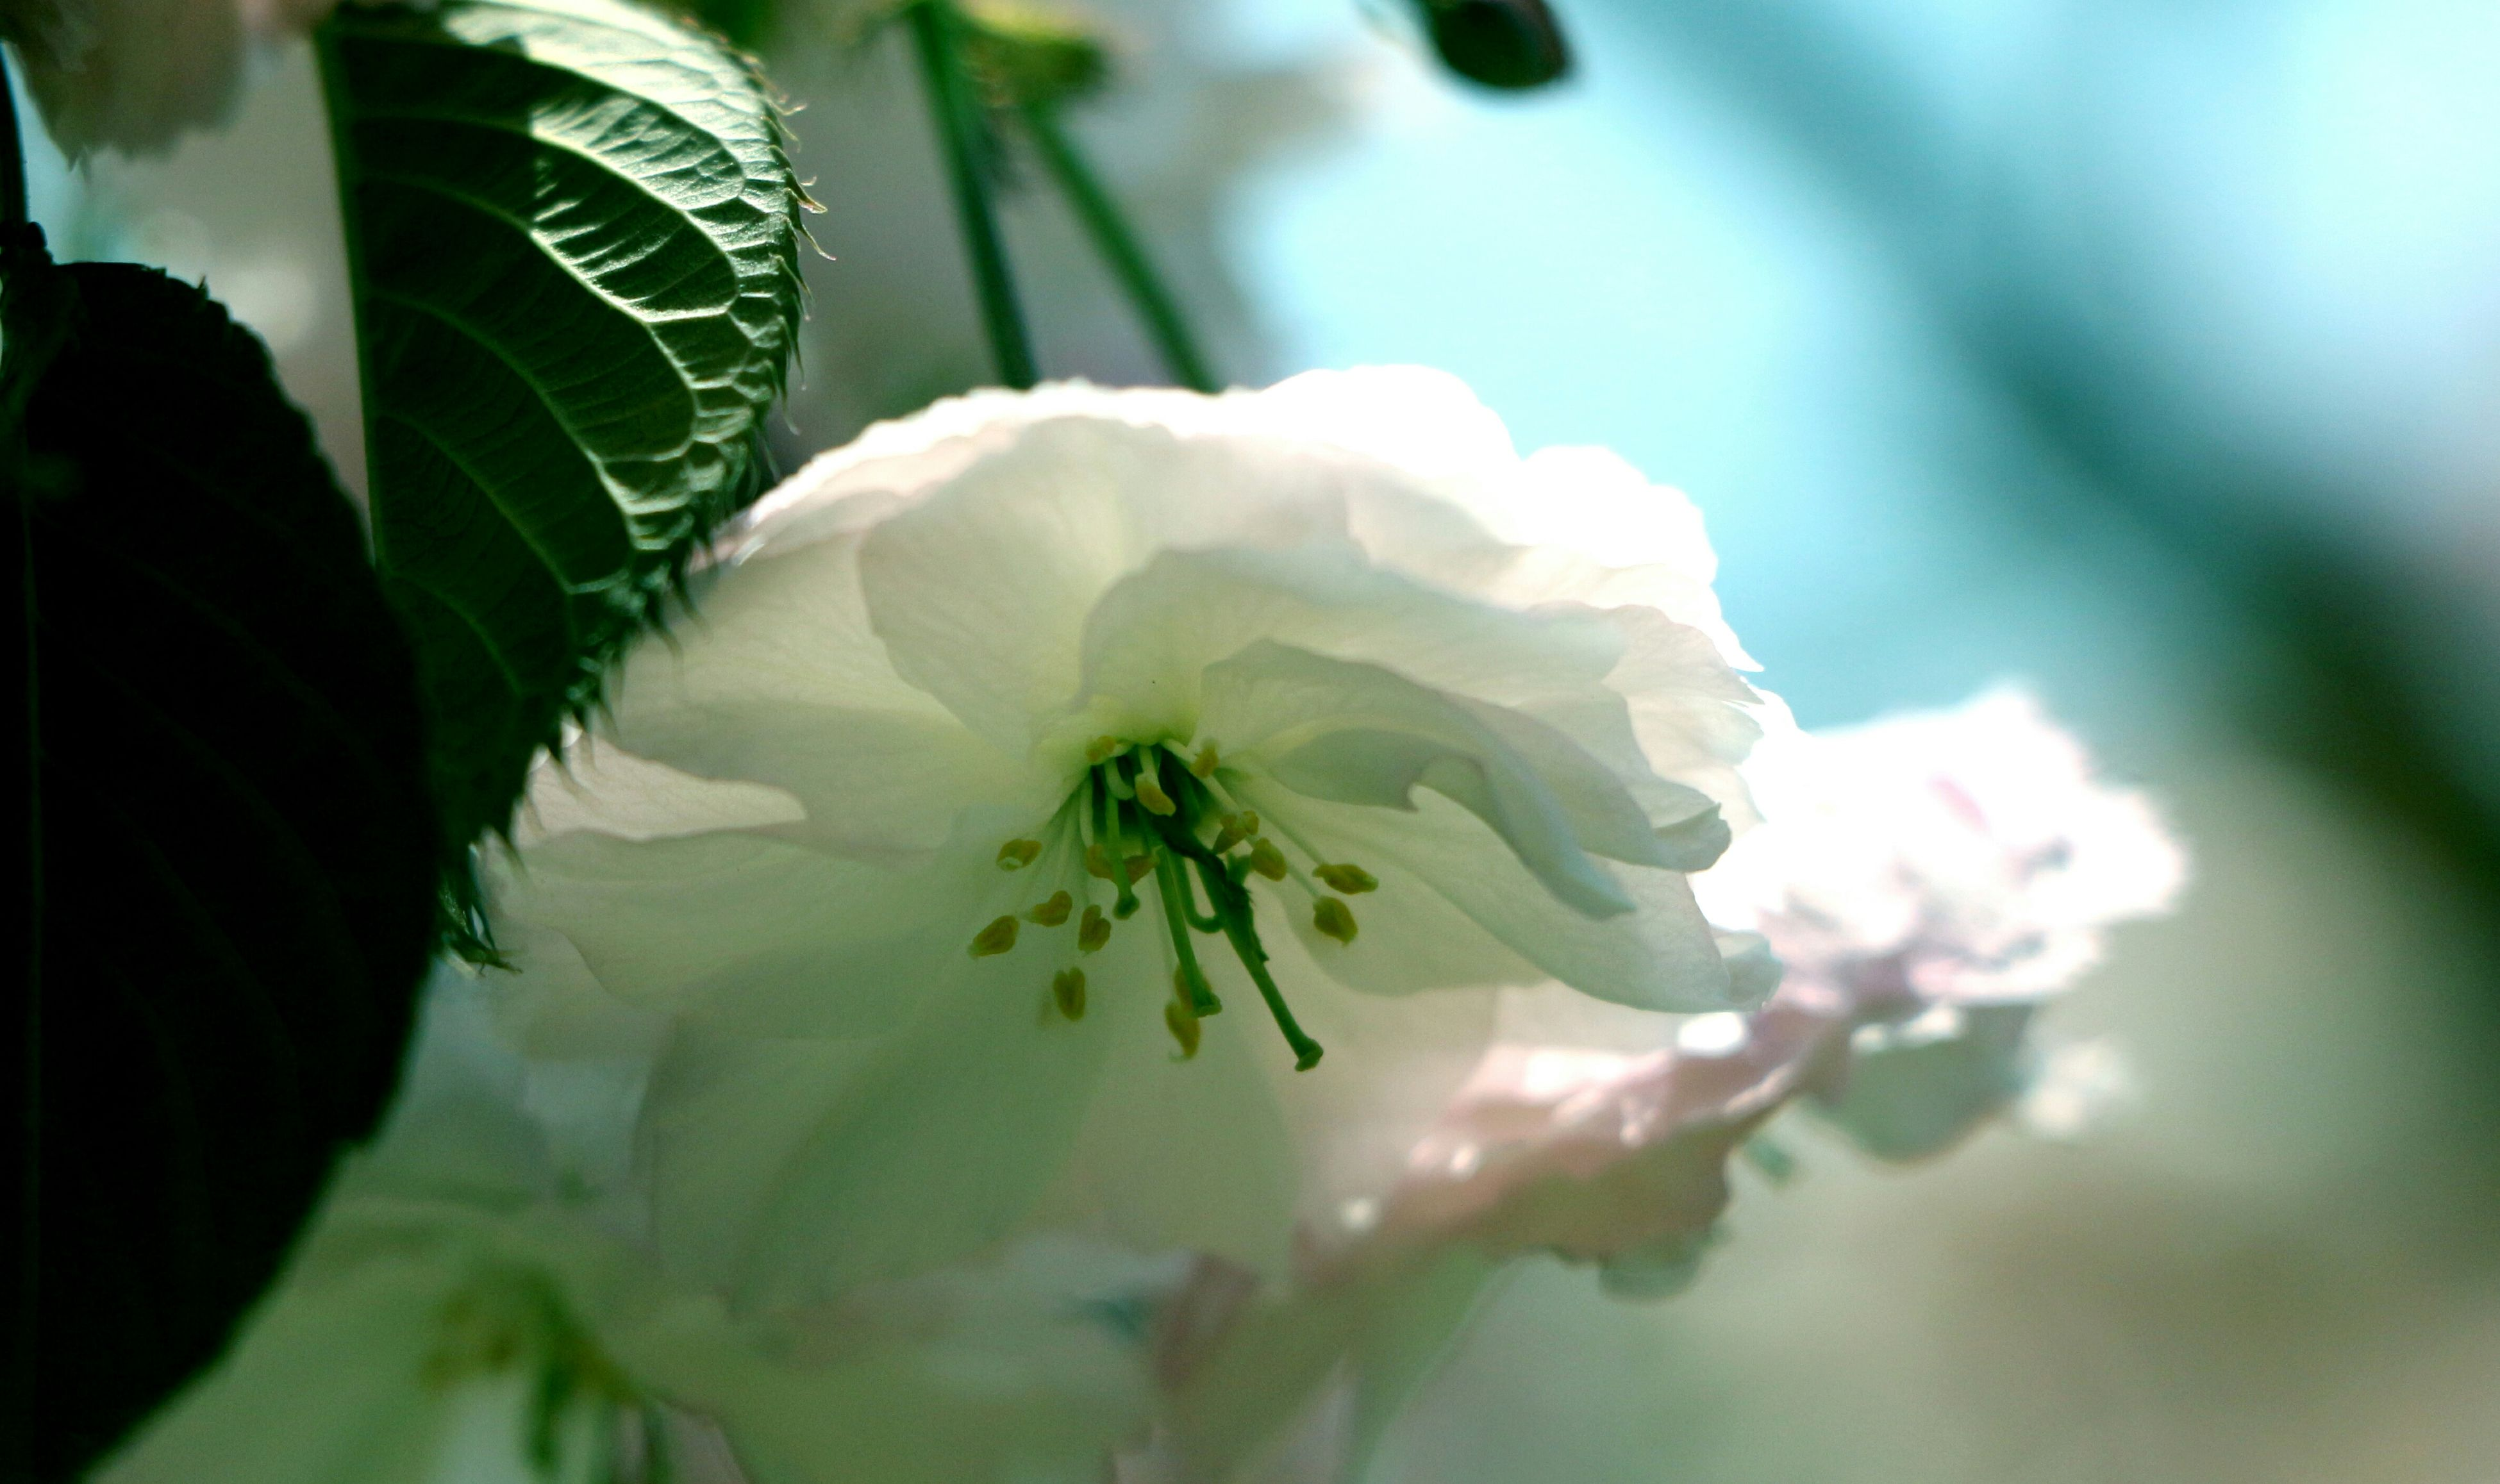 flower, growth, freshness, fragility, petal, close-up, beauty in nature, flower head, focus on foreground, white color, nature, plant, leaf, blooming, selective focus, blossom, in bloom, bud, botany, single flower